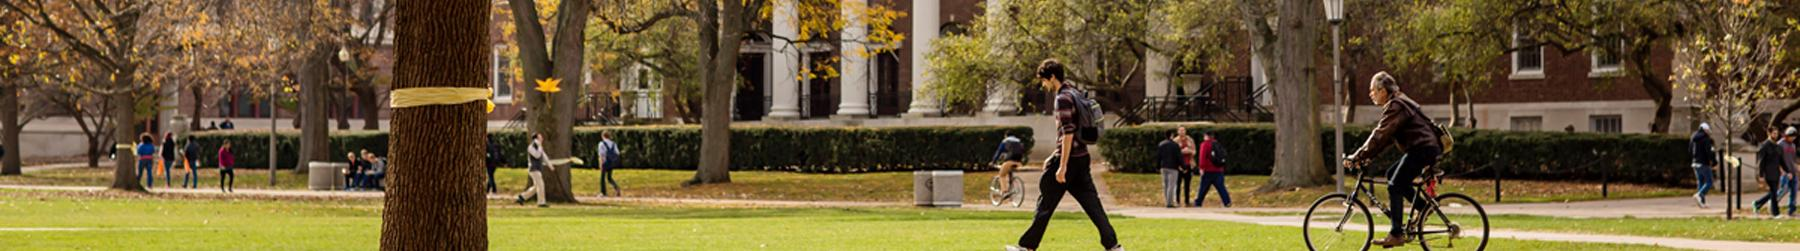 Students pass through the Main Quad amidst falling autumn leaves.